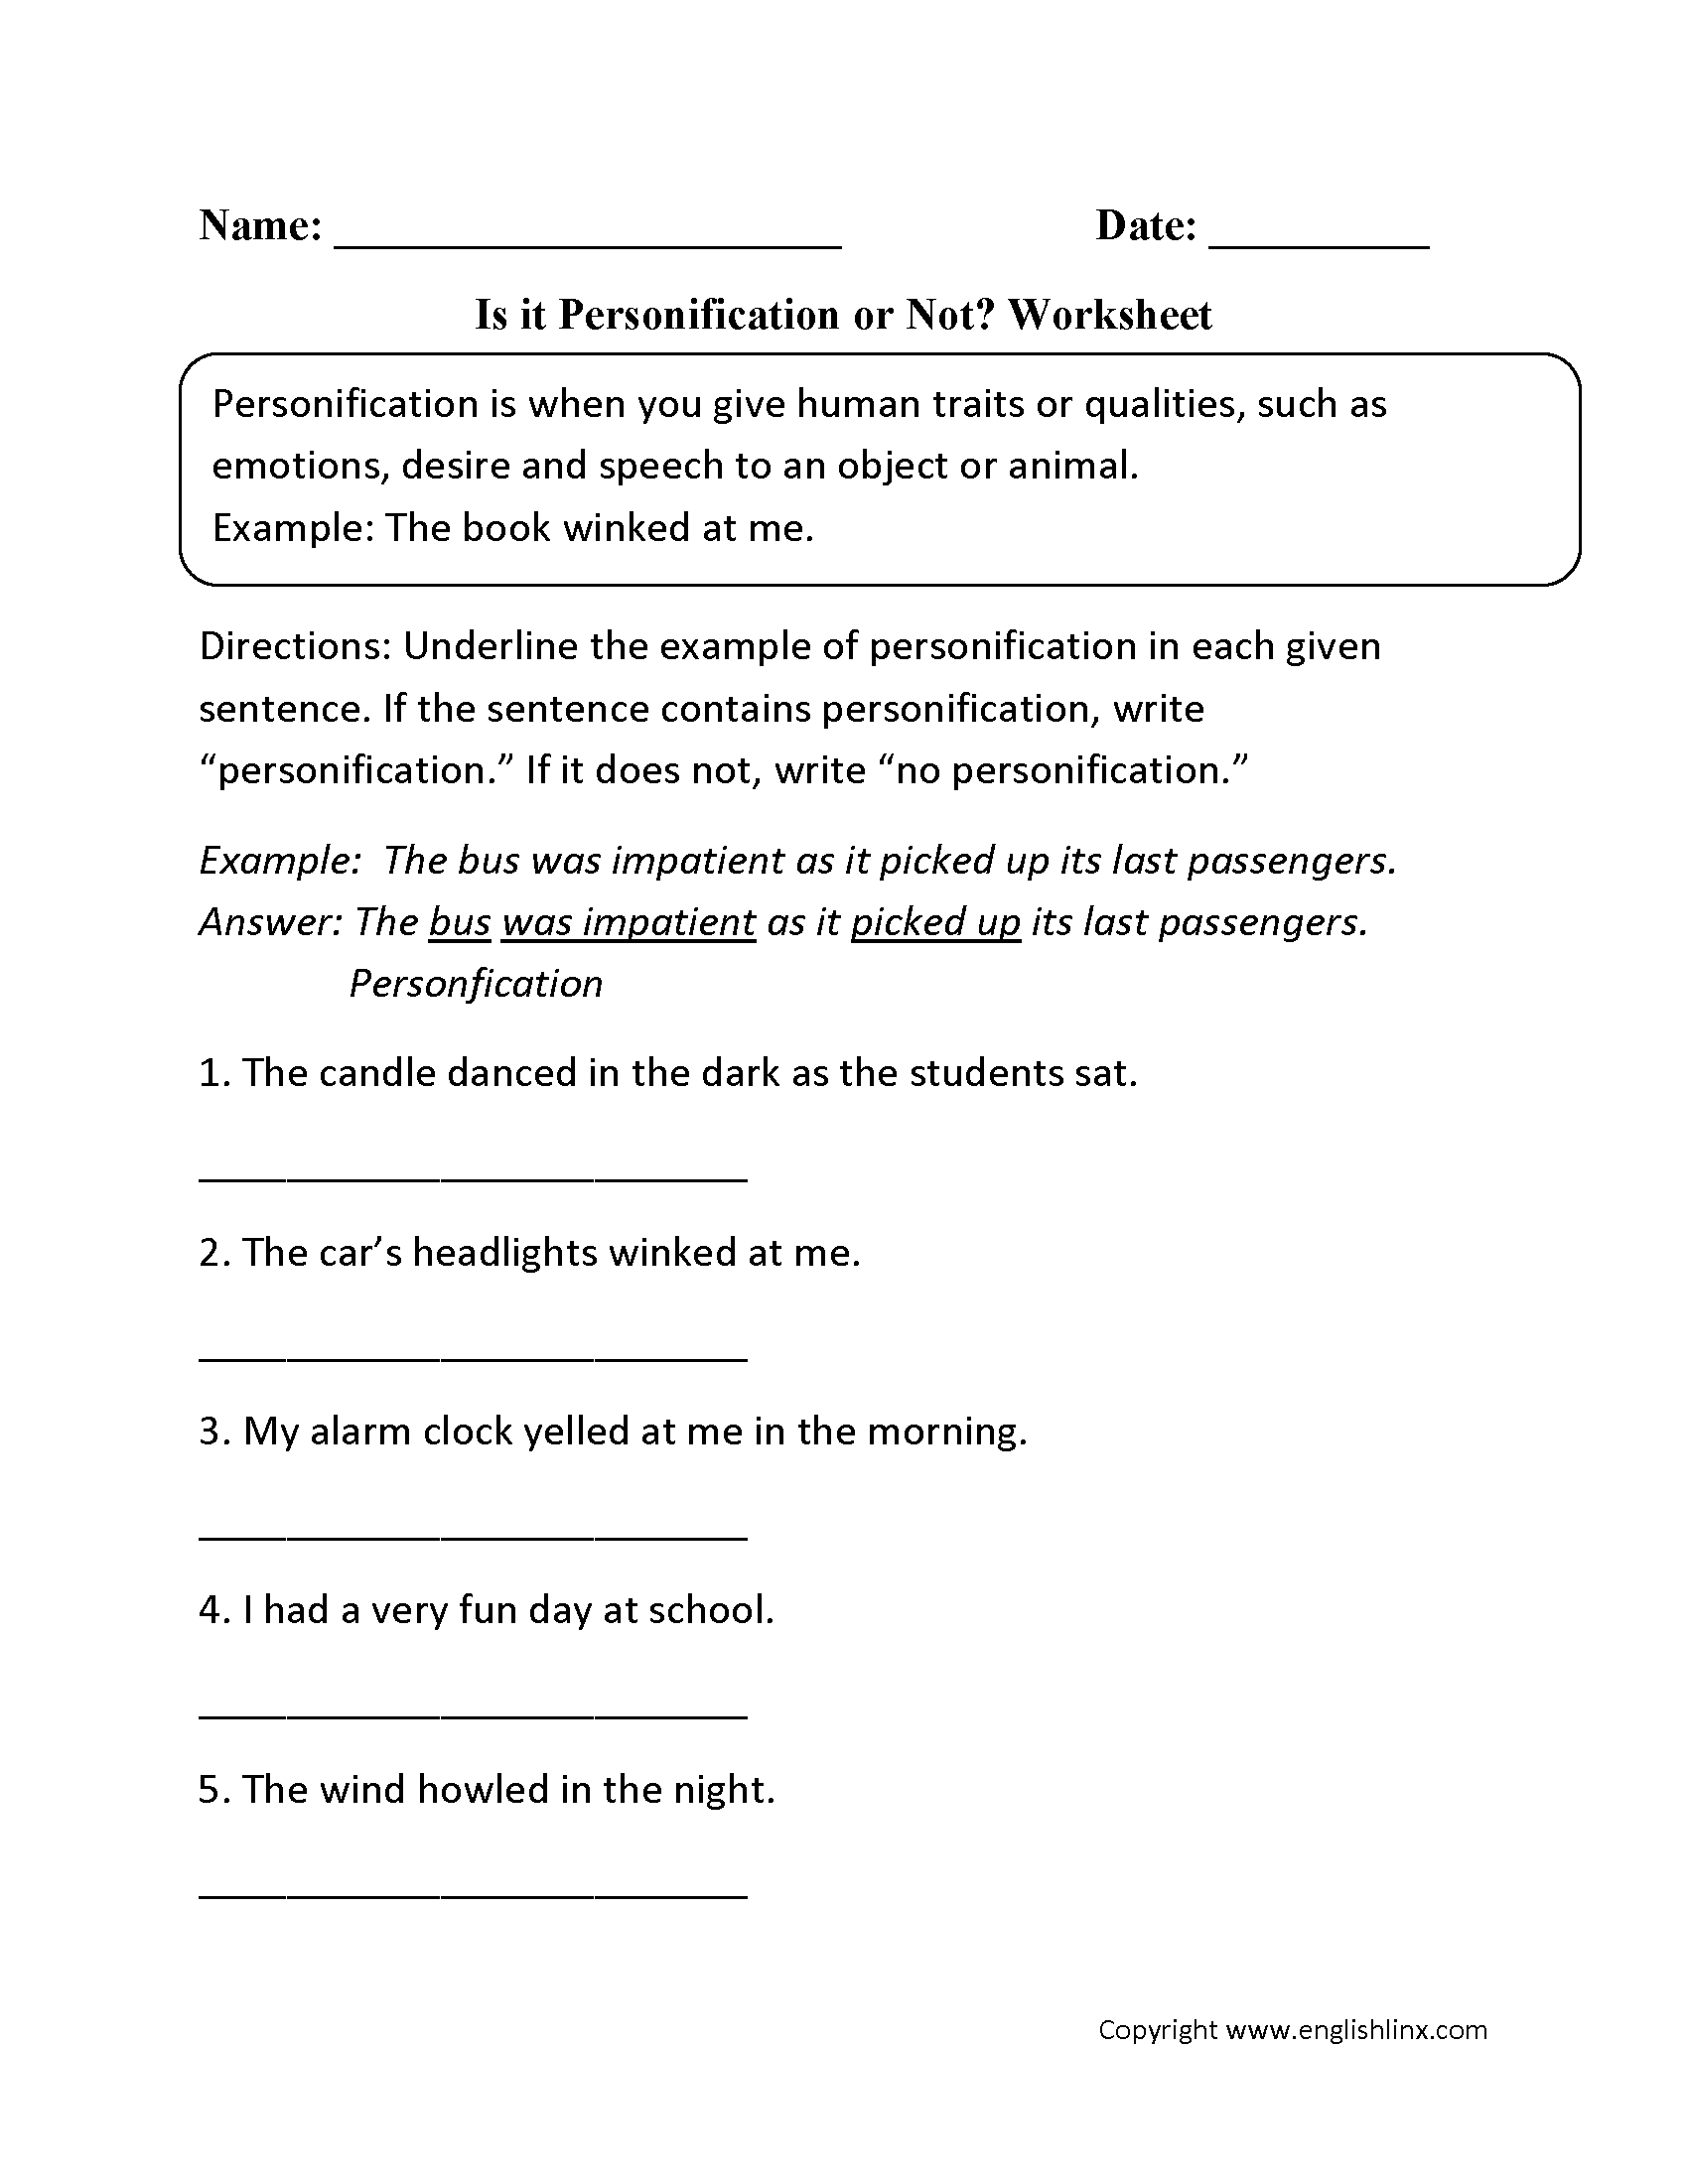 Worksheets Personification Worksheets figurative language worksheets personification is it or not worksheet